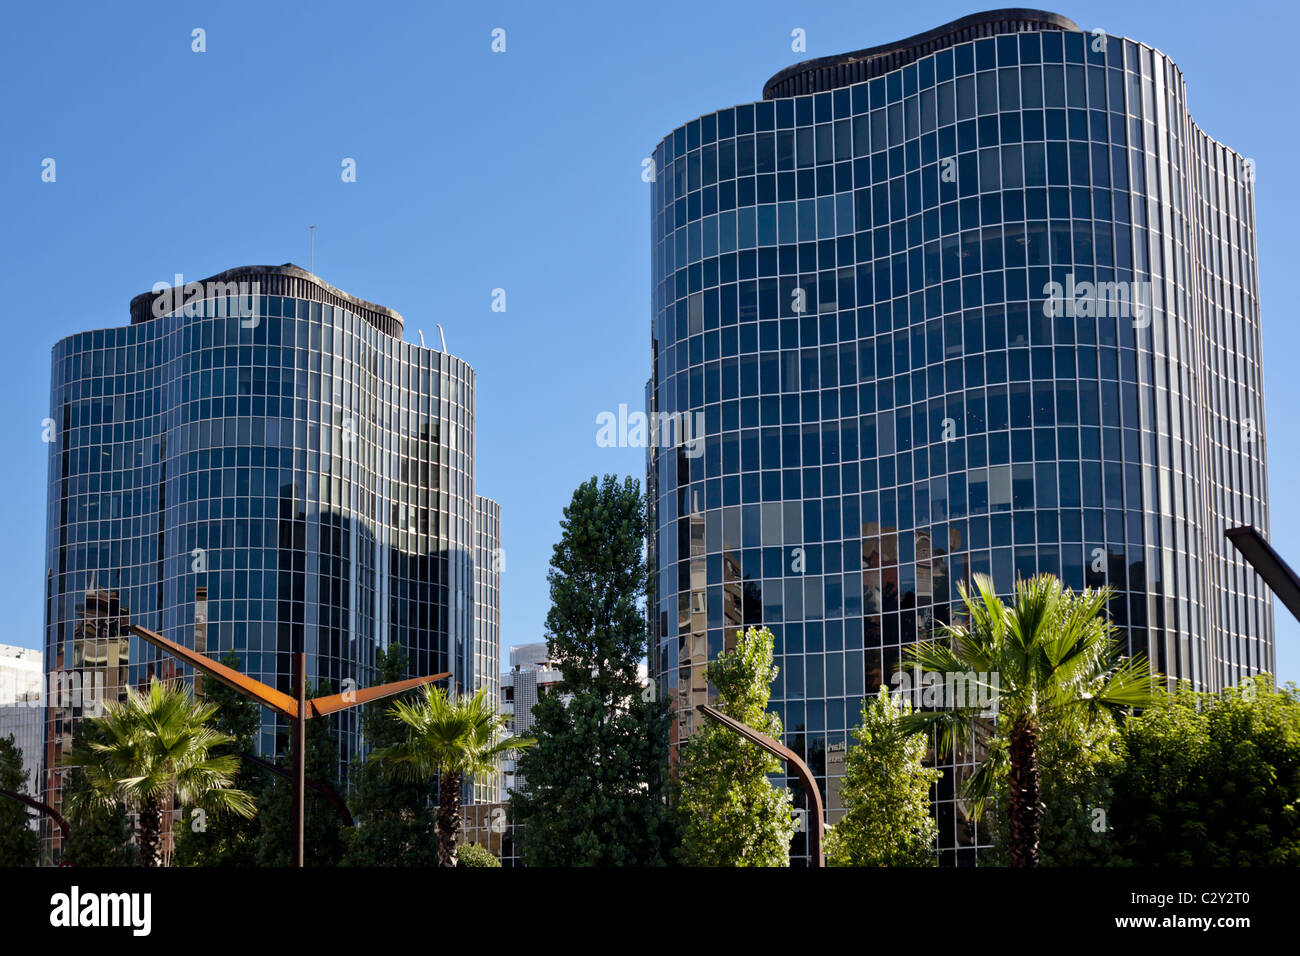 Trade building by josep antoni coderch stock photo - Josep antoni coderch ...